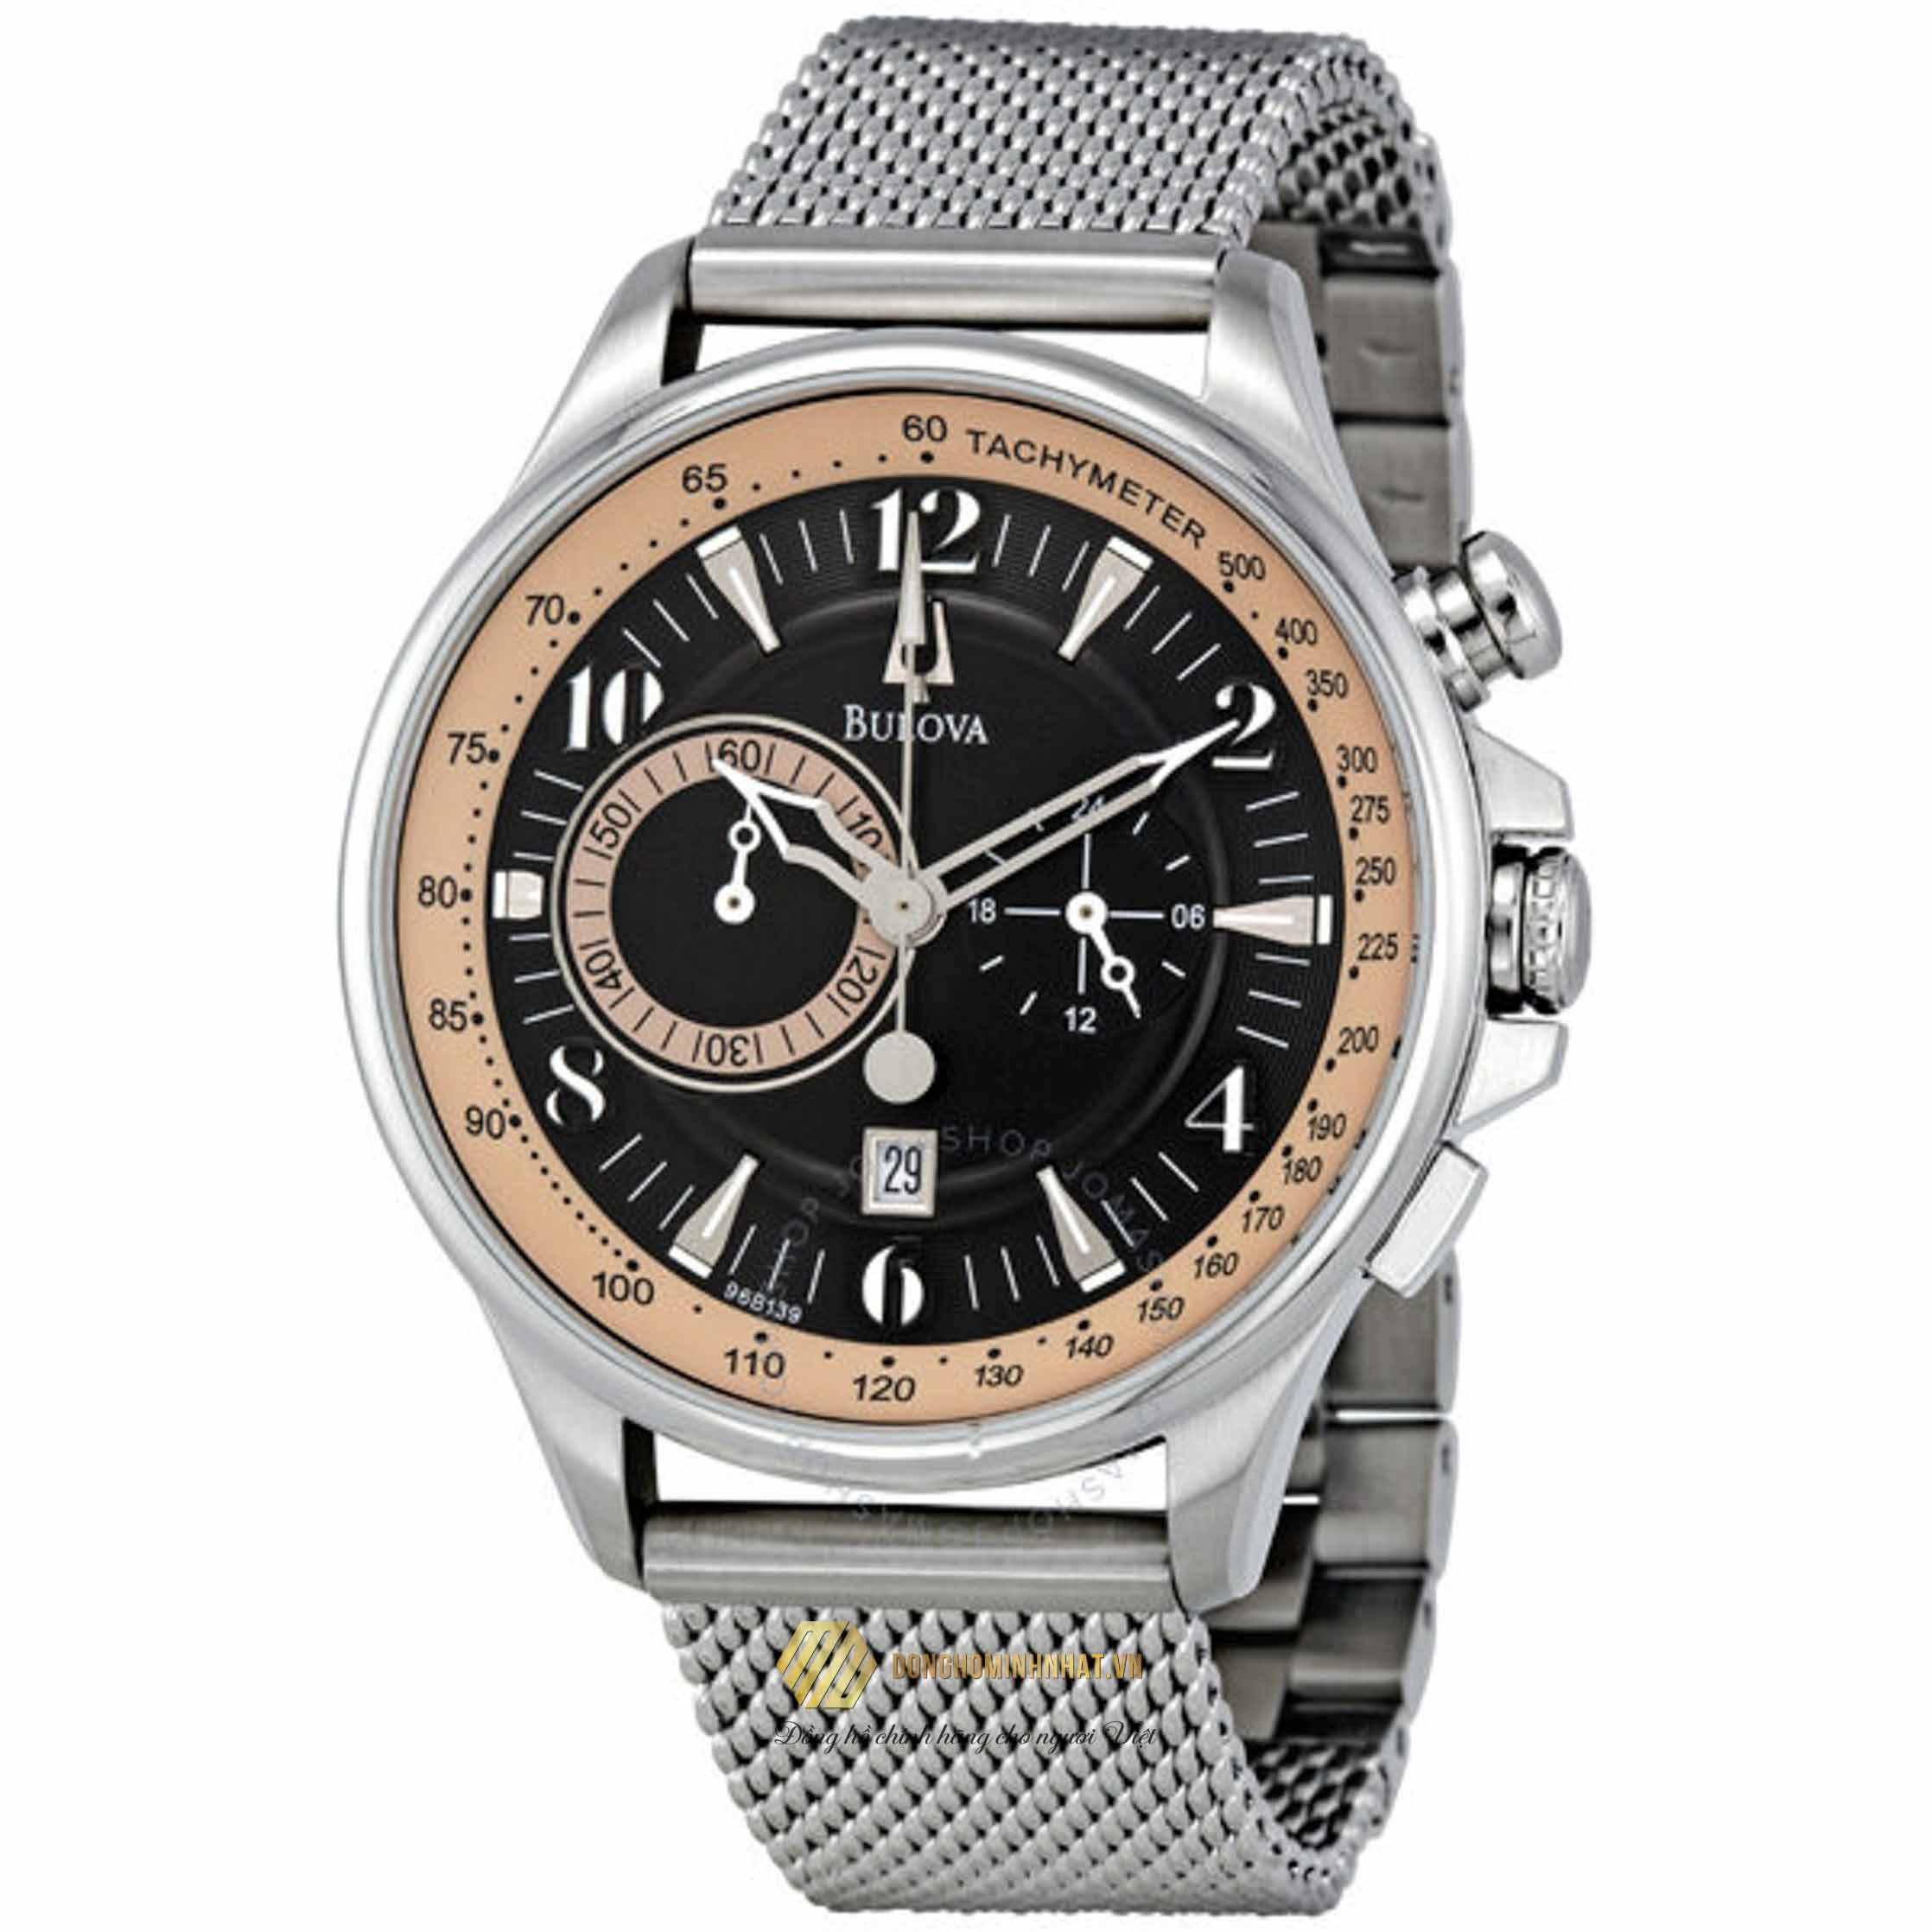 ĐỒNG HỒ BULOVA 96B139 Adventurer Chronograph Men's Watch